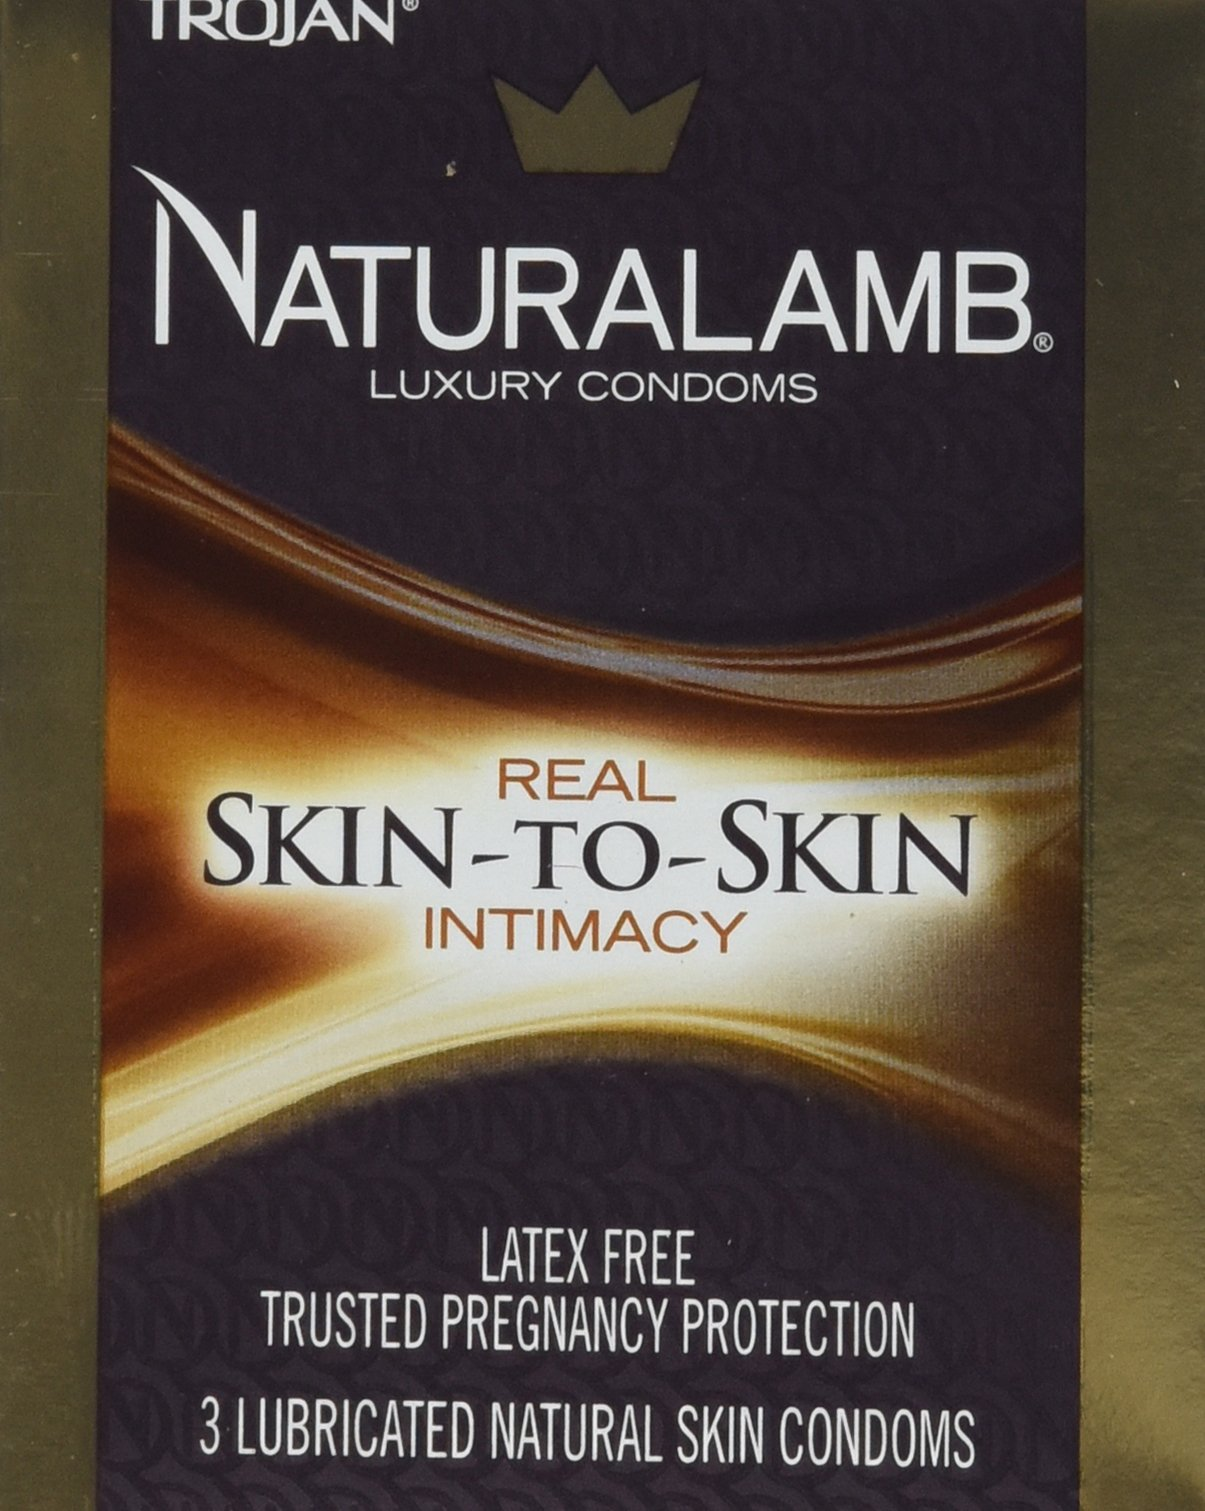 Special pack of 6 TROJAN NATURALAMB 98050 3 per pack by Choice